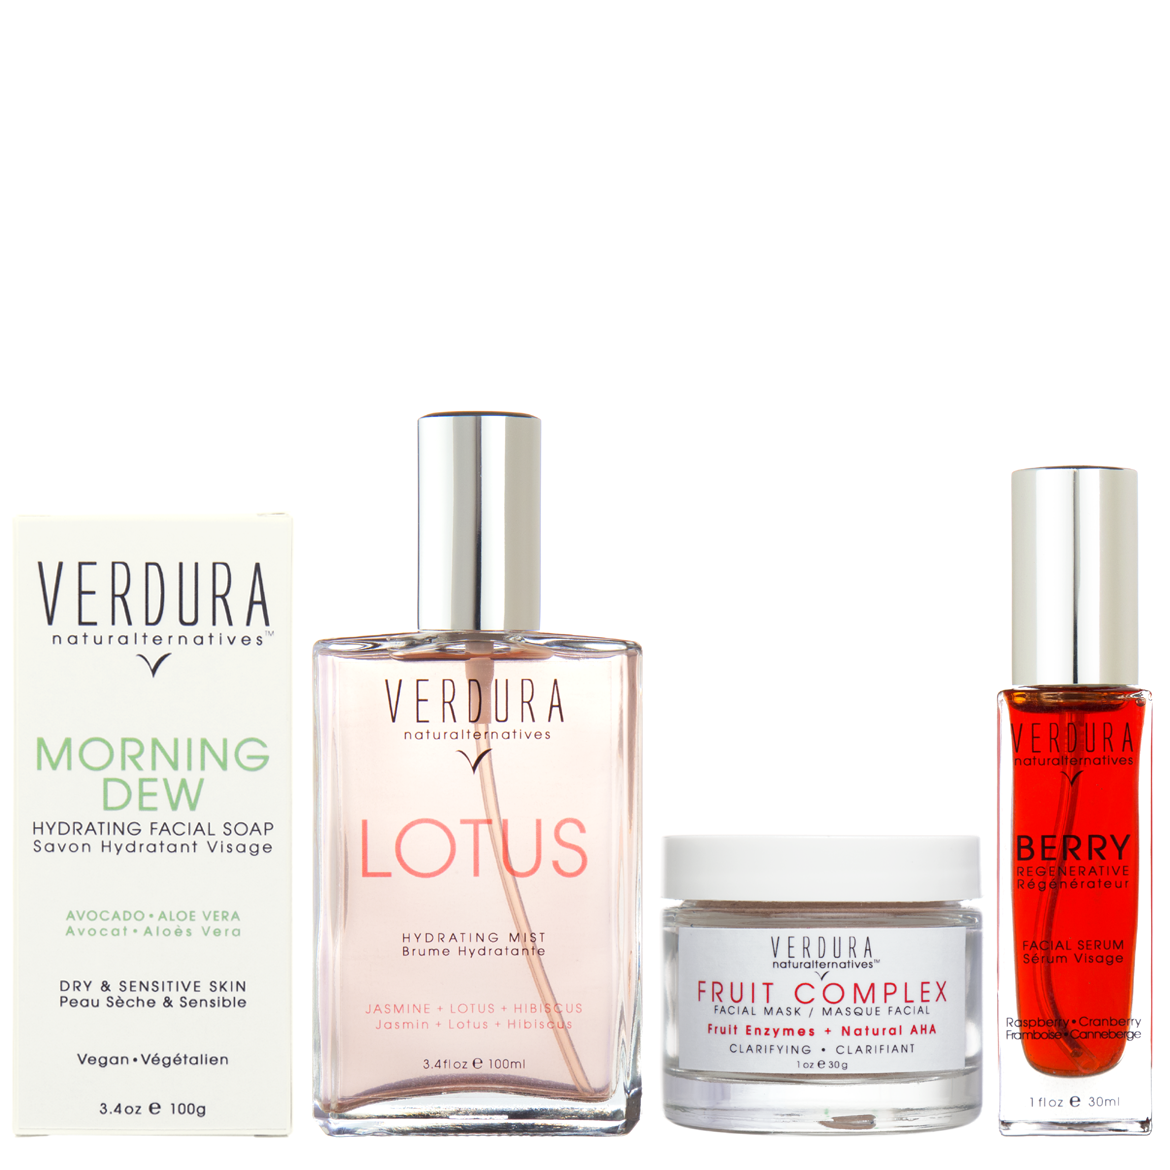 ANTI-AGING REGIMEN | 100% natural-vegan | VERDURA naturalternatives | Our